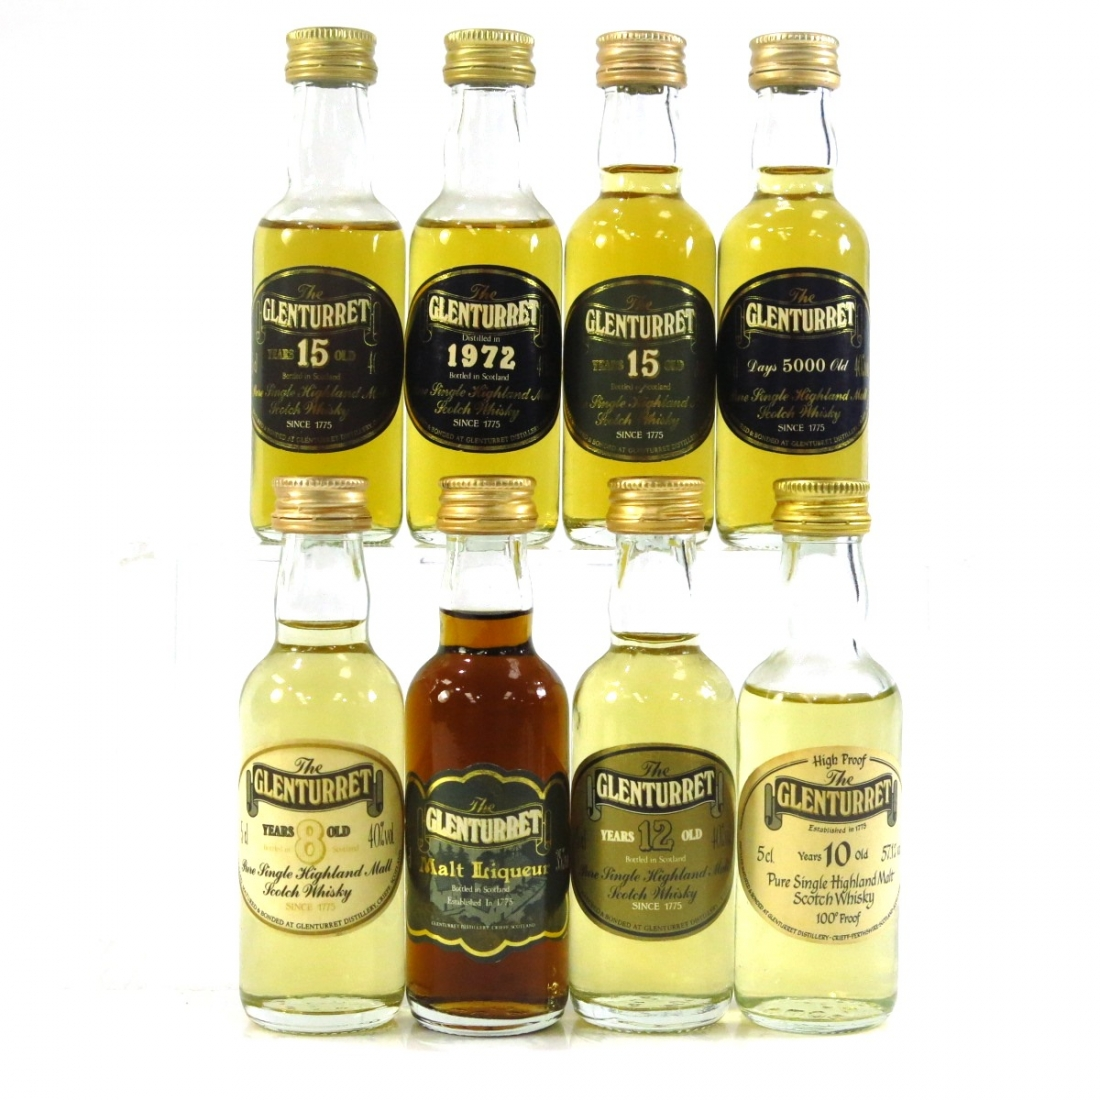 Glenturret Miniature Selection 8 x 5cl